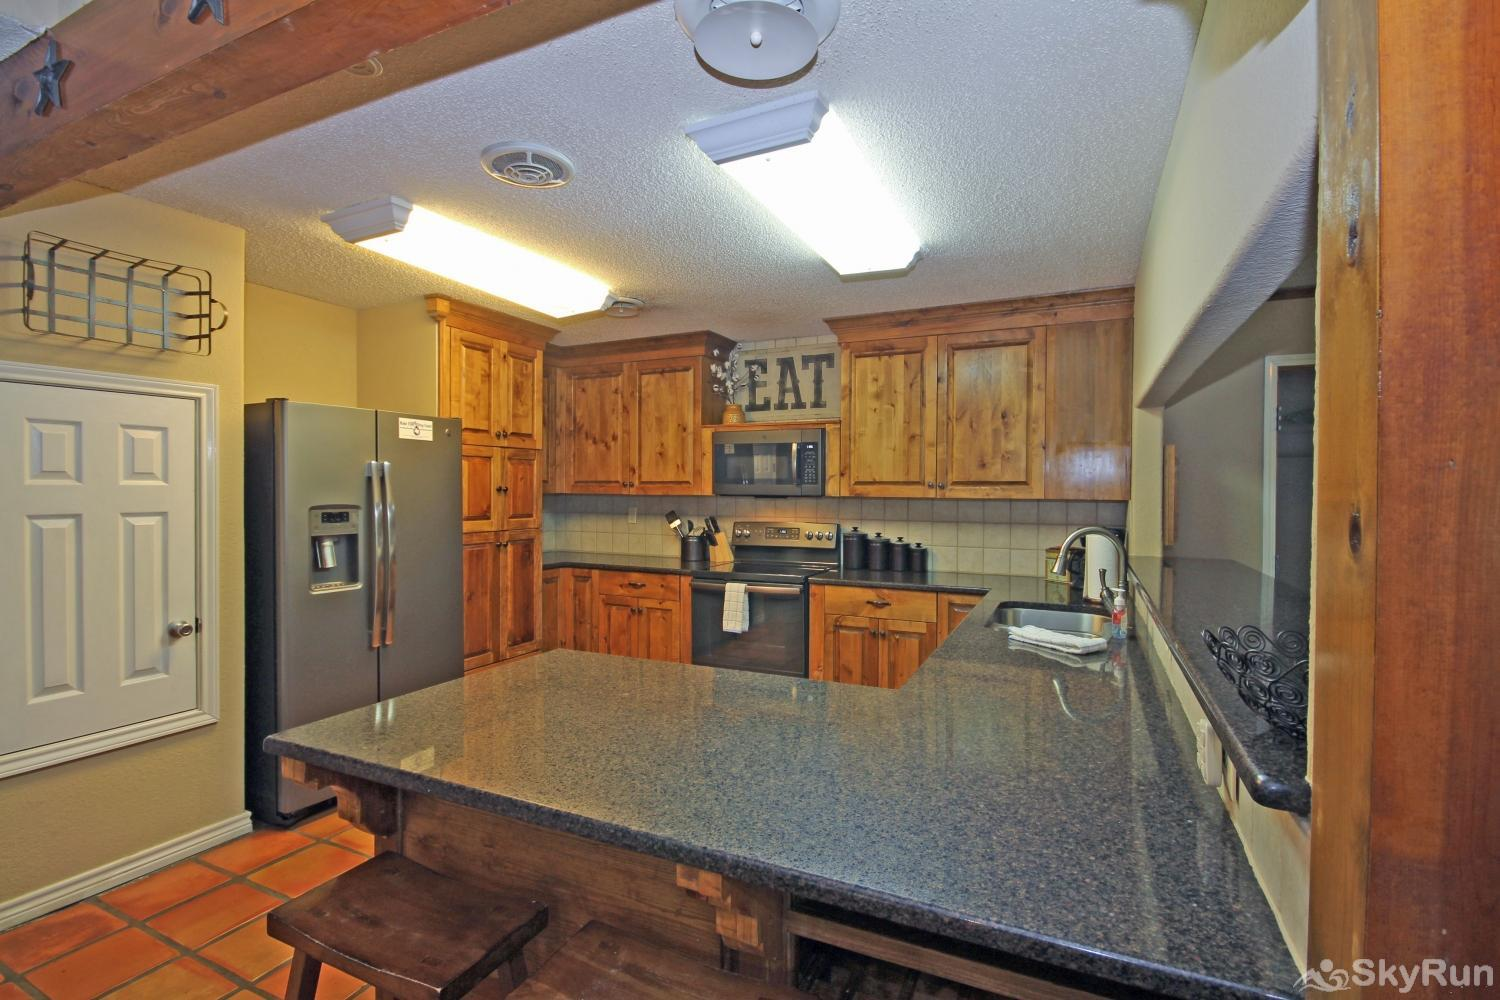 STAR OF TEXAS AND COTTAGE COMBO Kitchen equipped with all cooking and dining essentials